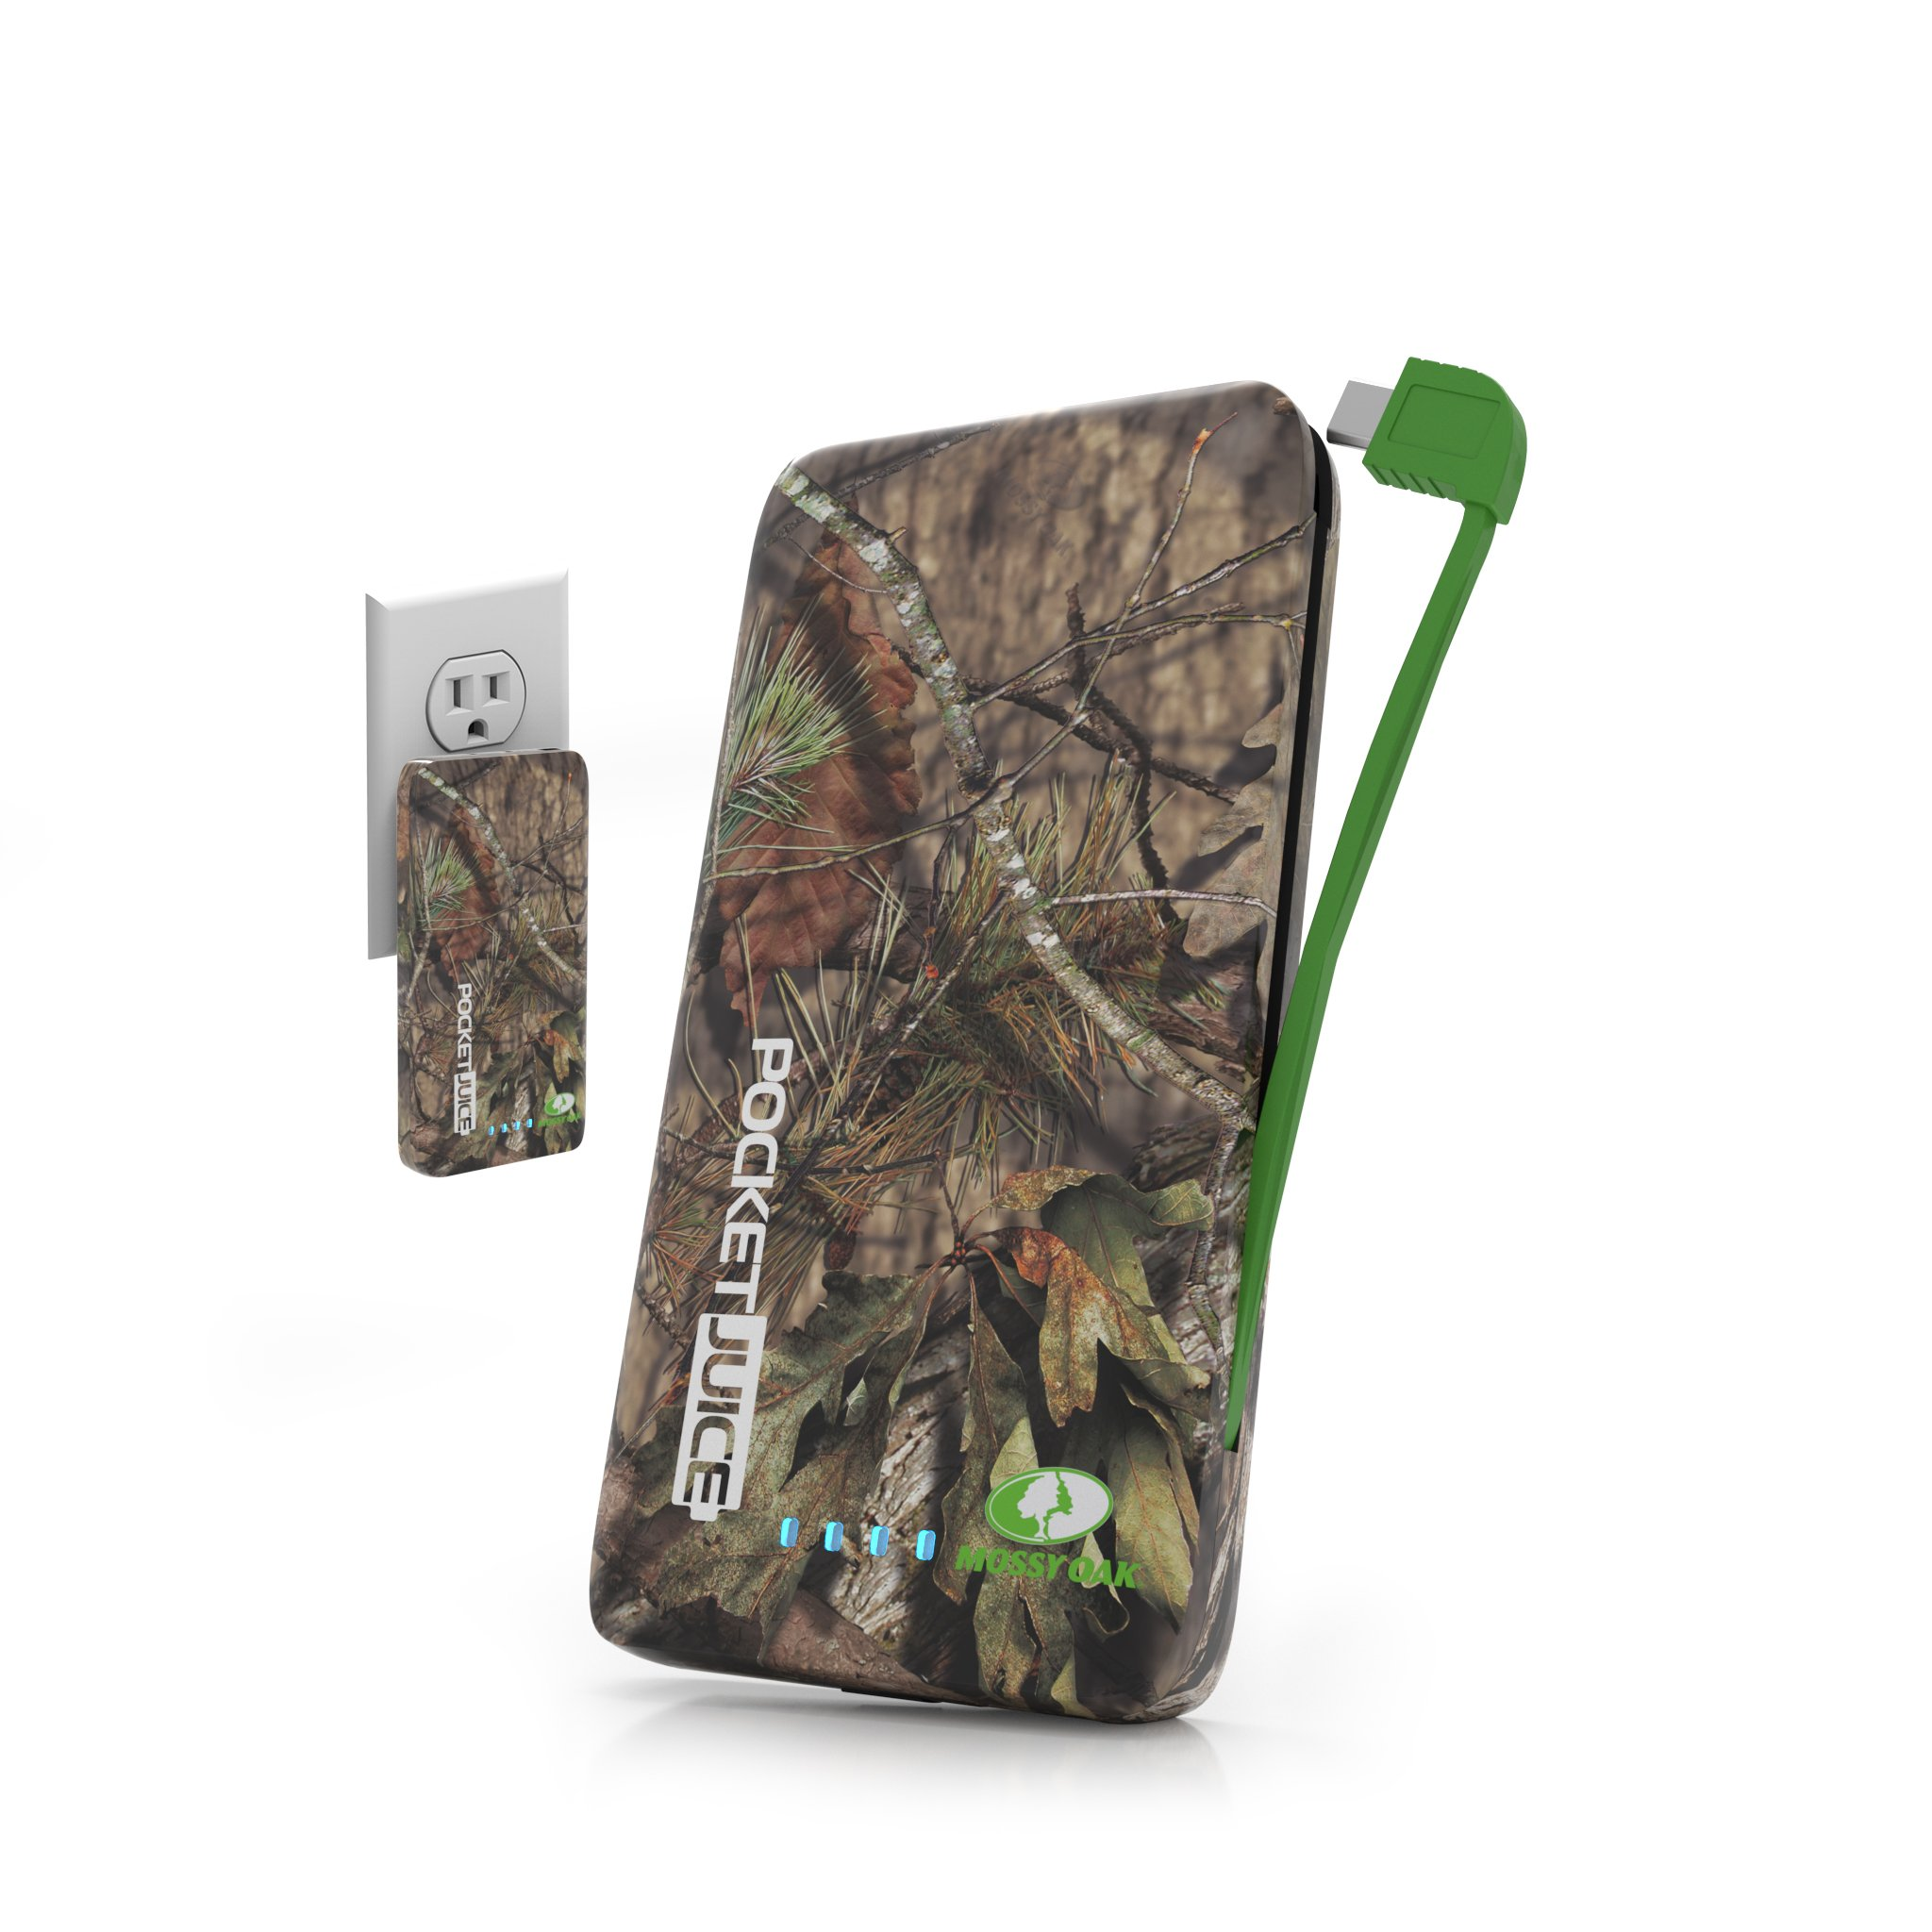 Tzumi PocketJuice Endurance AC - Mini Portable Device Battery Pack Charger - 4,000 mAh High-Speed Single USB Port - Works With All iPhone And Android Devices & Includes Micro USB Cable – Mossy Oak